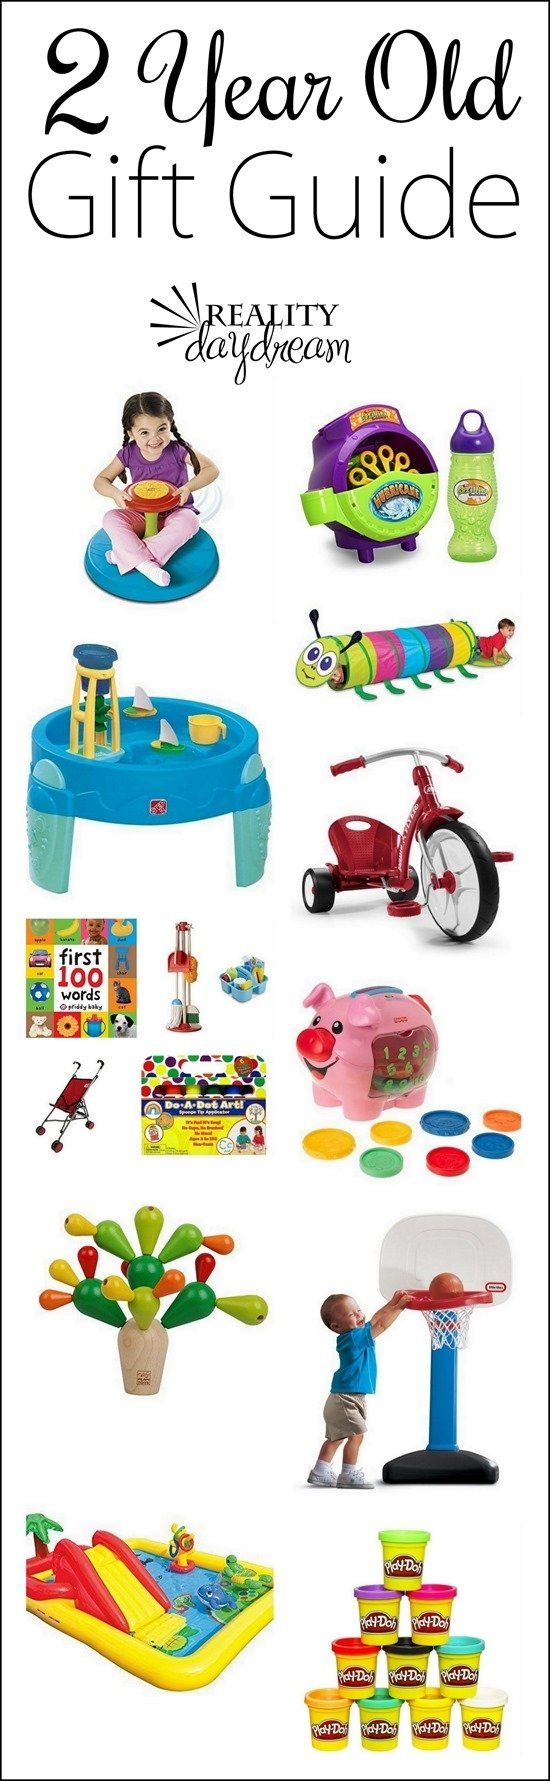 10 Wonderful Two Year Old Gift Ideas non annoying gift ideas for two year olds reality daydream 2020